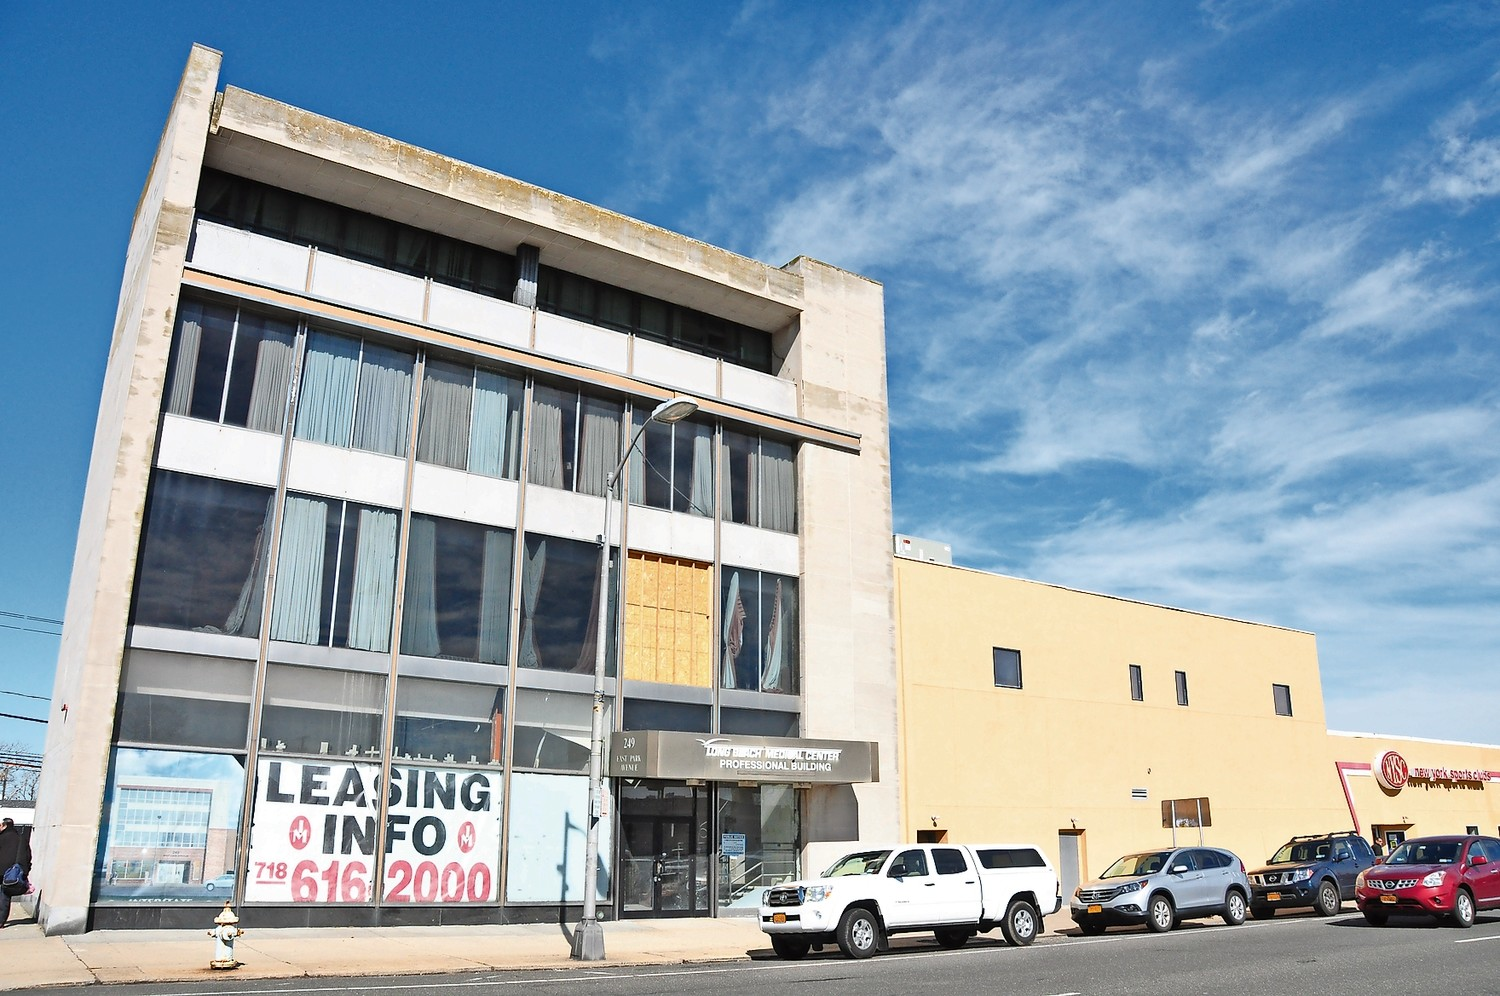 A developer is seeking tax breaks to convert a vacant building at 249 E. Park Ave., pictured, into rental units.